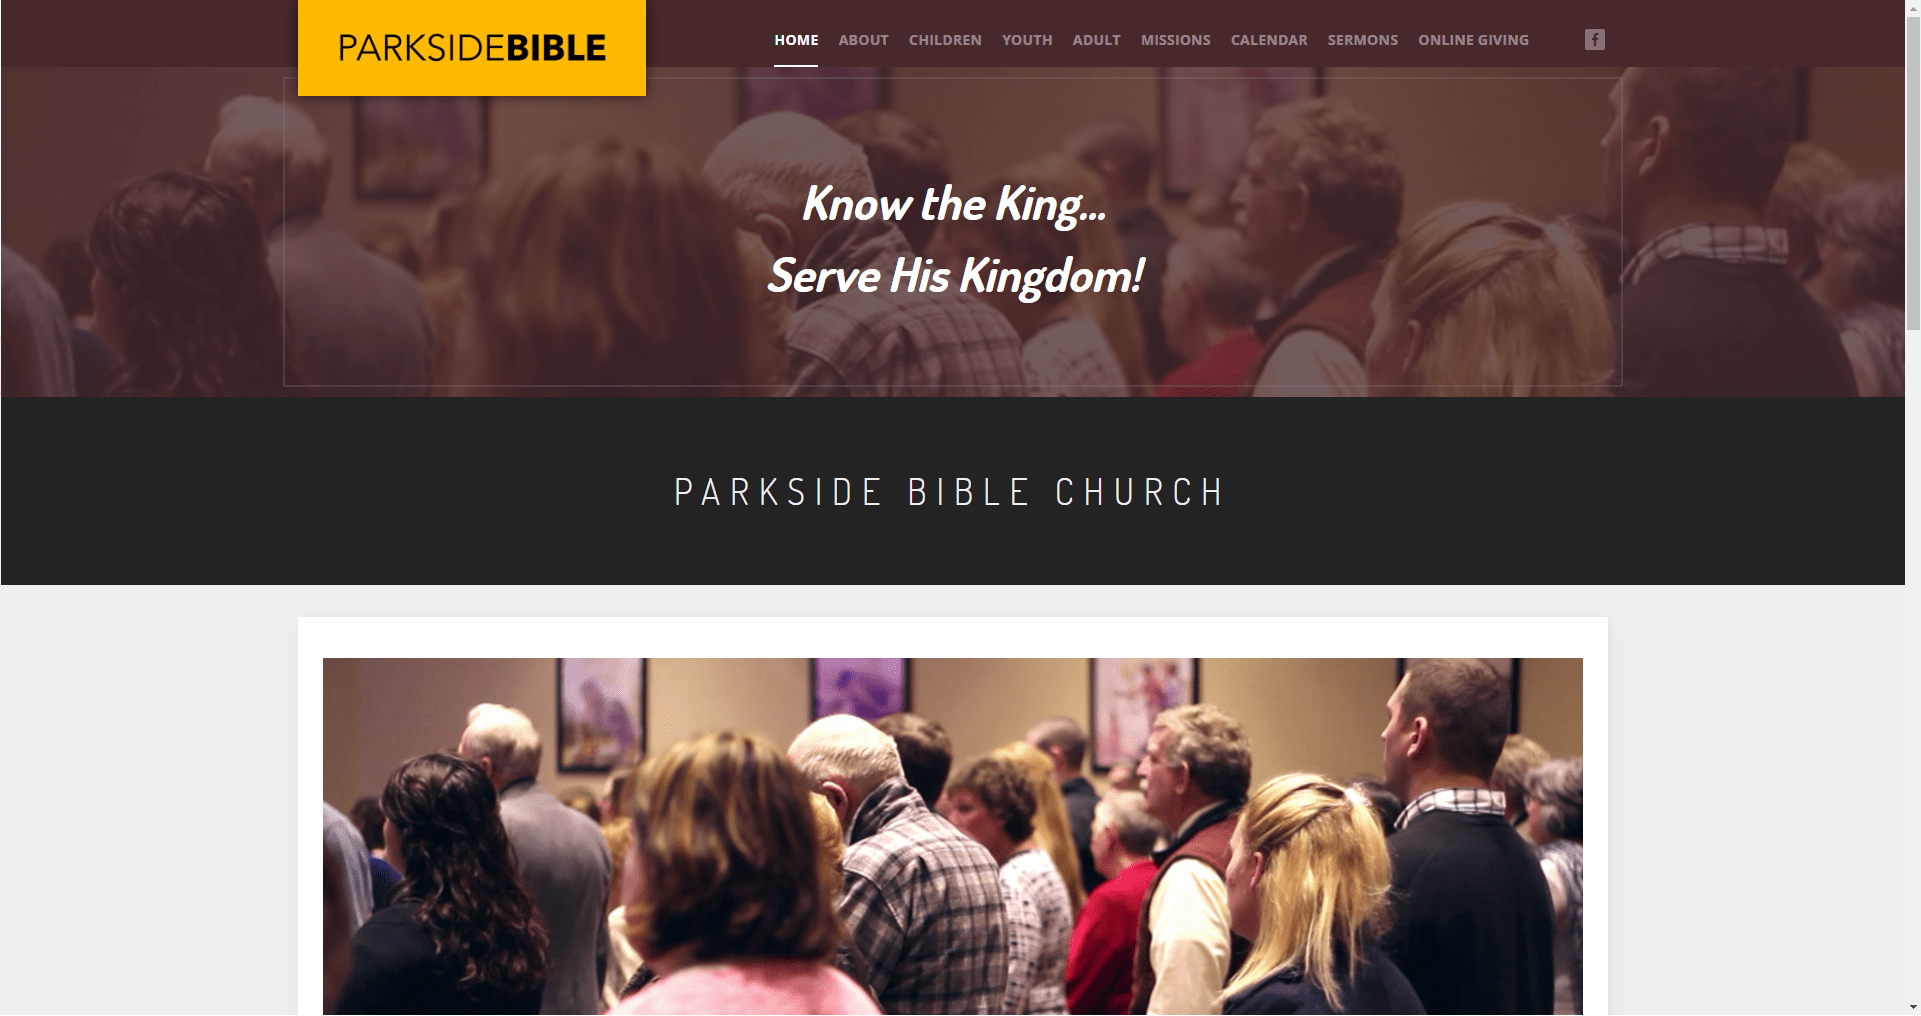 Parkside Bible Church